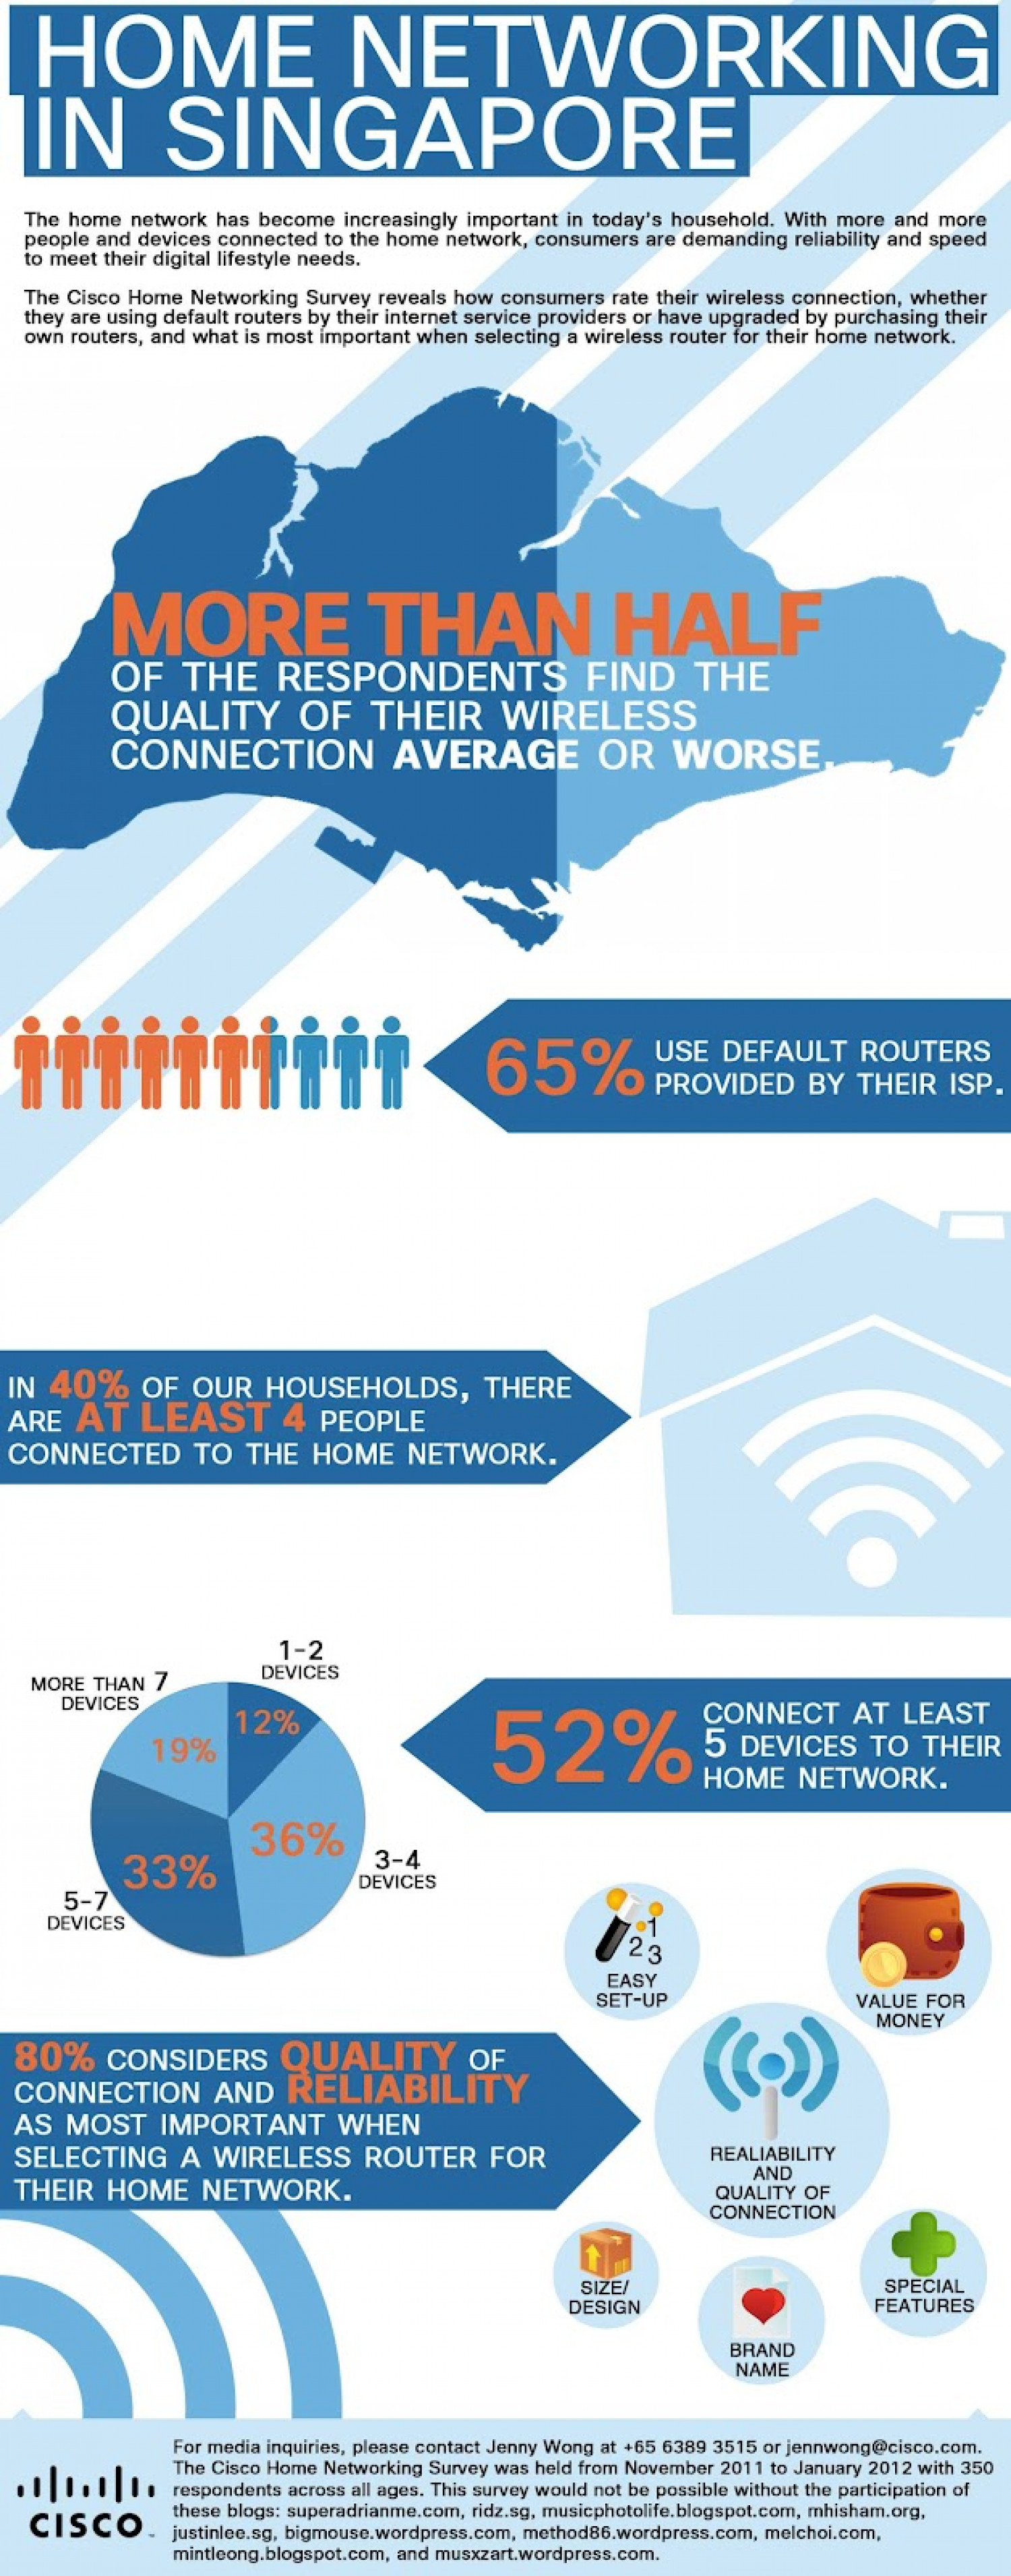 Home Networking in Singapore Infographic